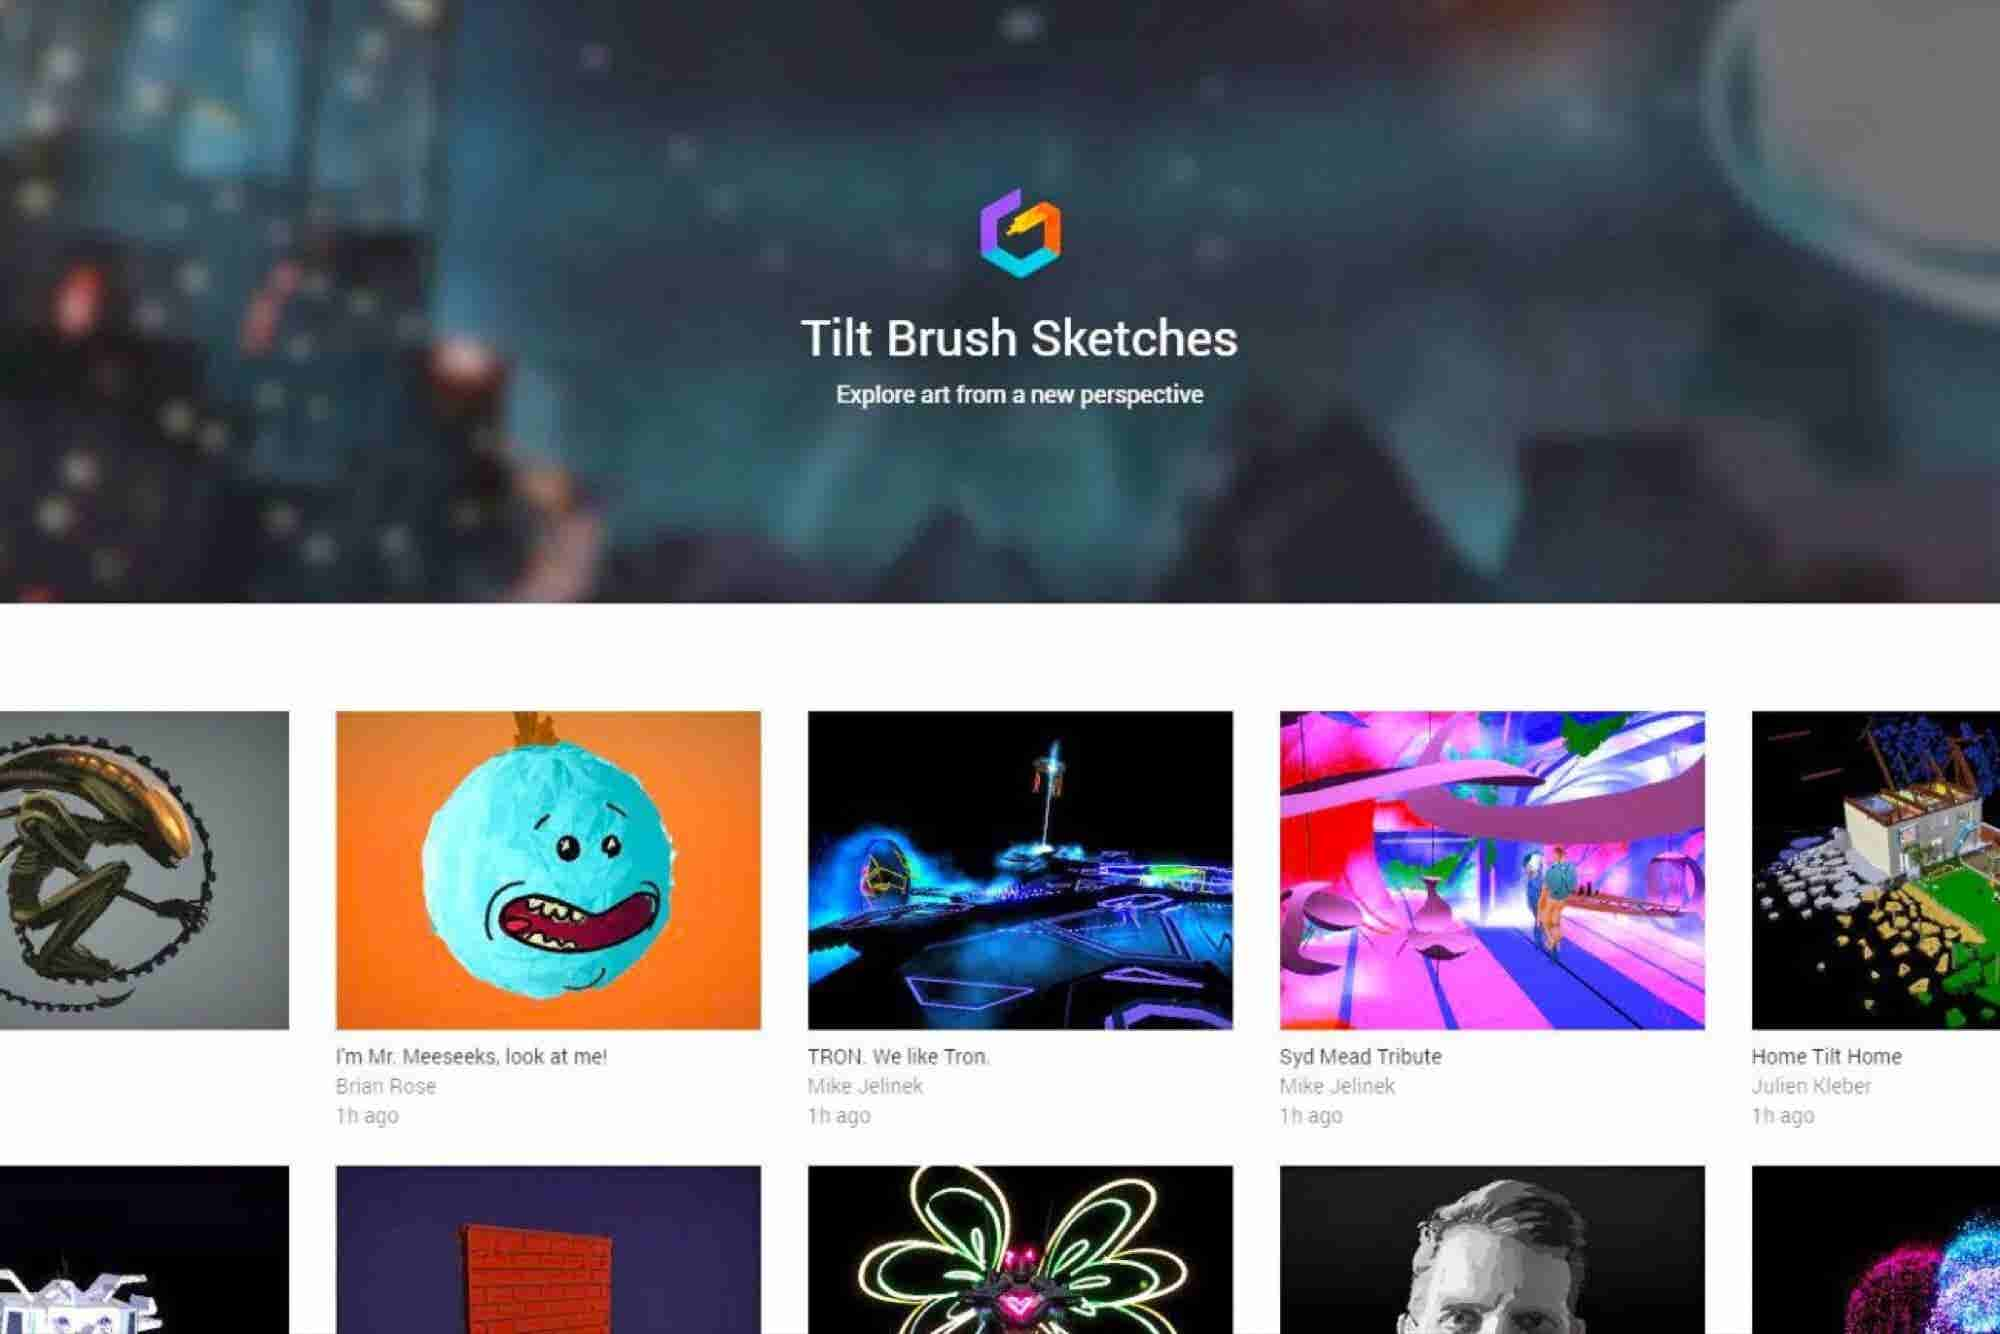 Show Off Your 3D Art in Tilt Brush's New Online Gallery